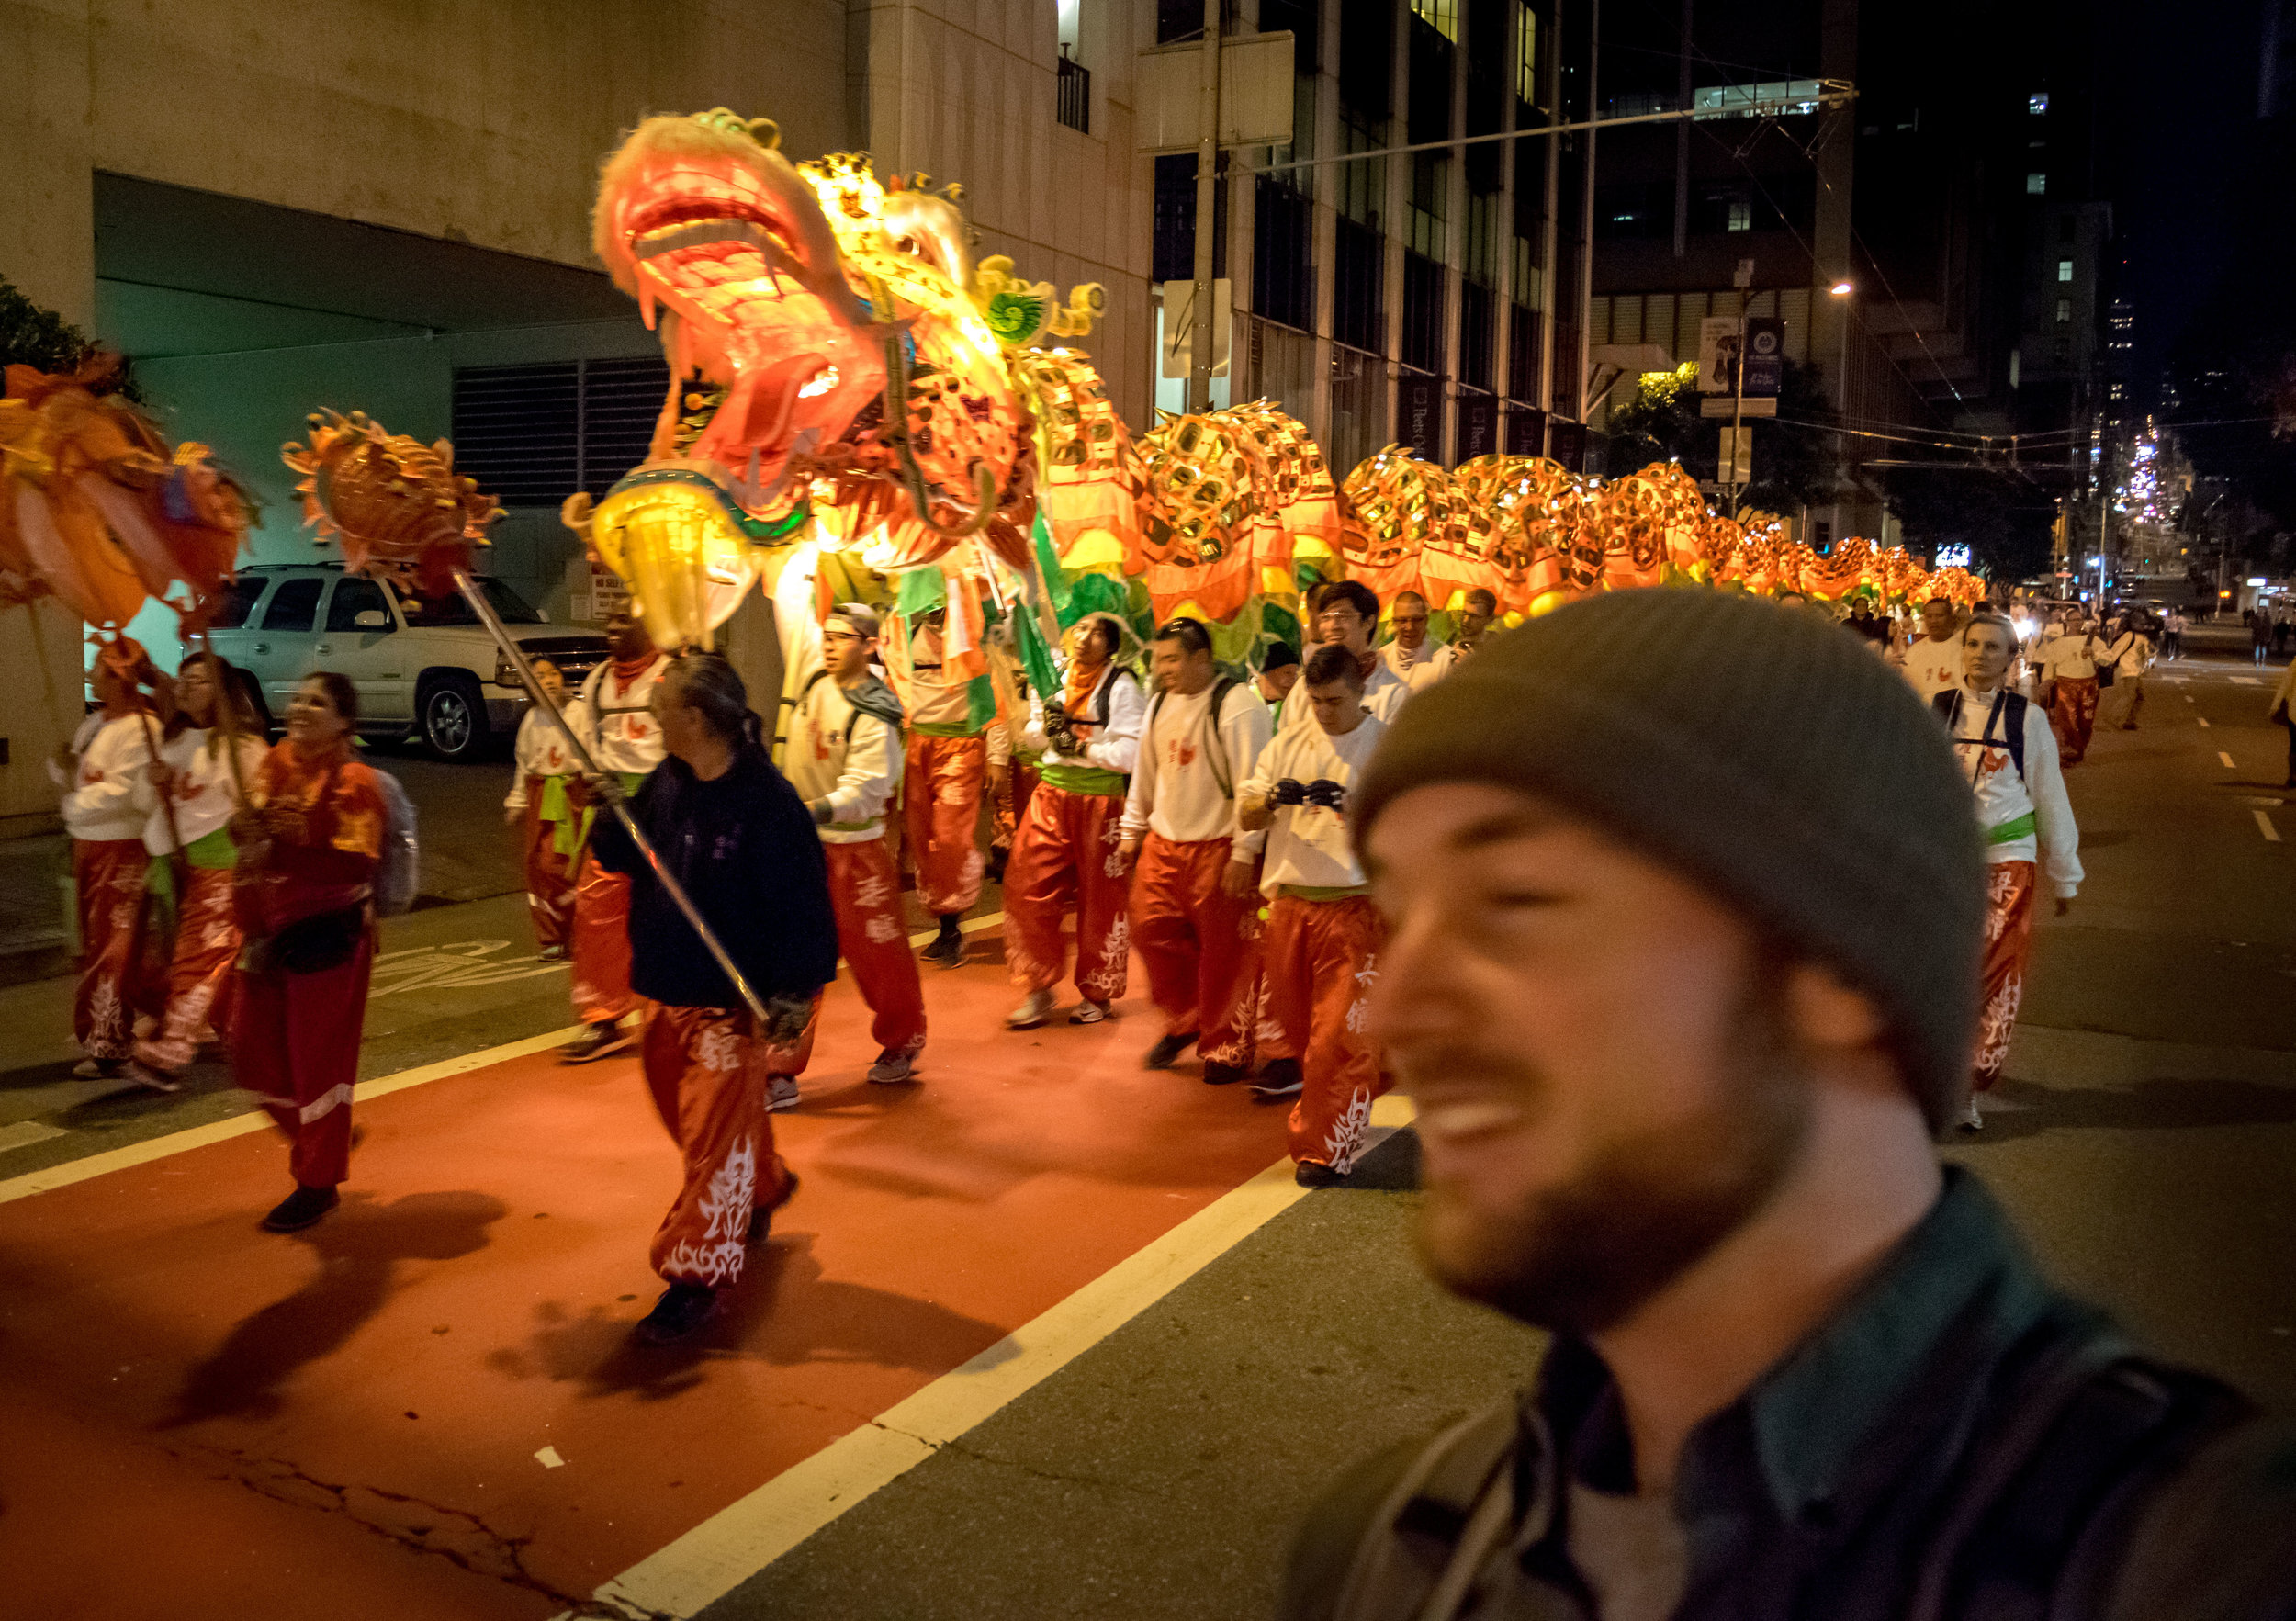 The parade was over; The dragon left the official route to go back to its home and, strangely, so did the crowds allowing just a few people—including myself—to walk with it.